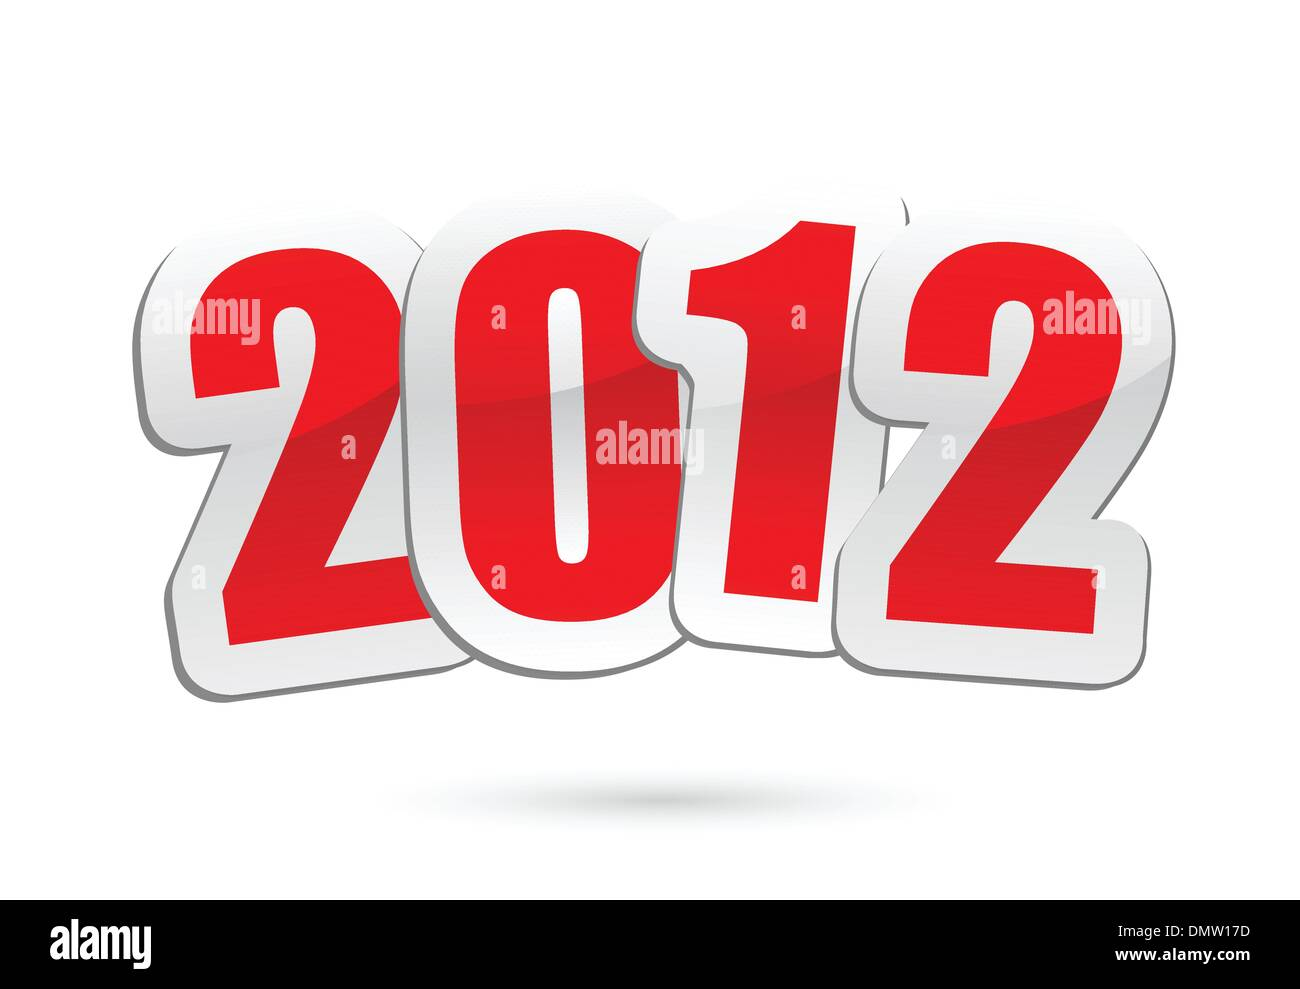 New Year Greetings Stock Photos & New Year Greetings Stock Images ...